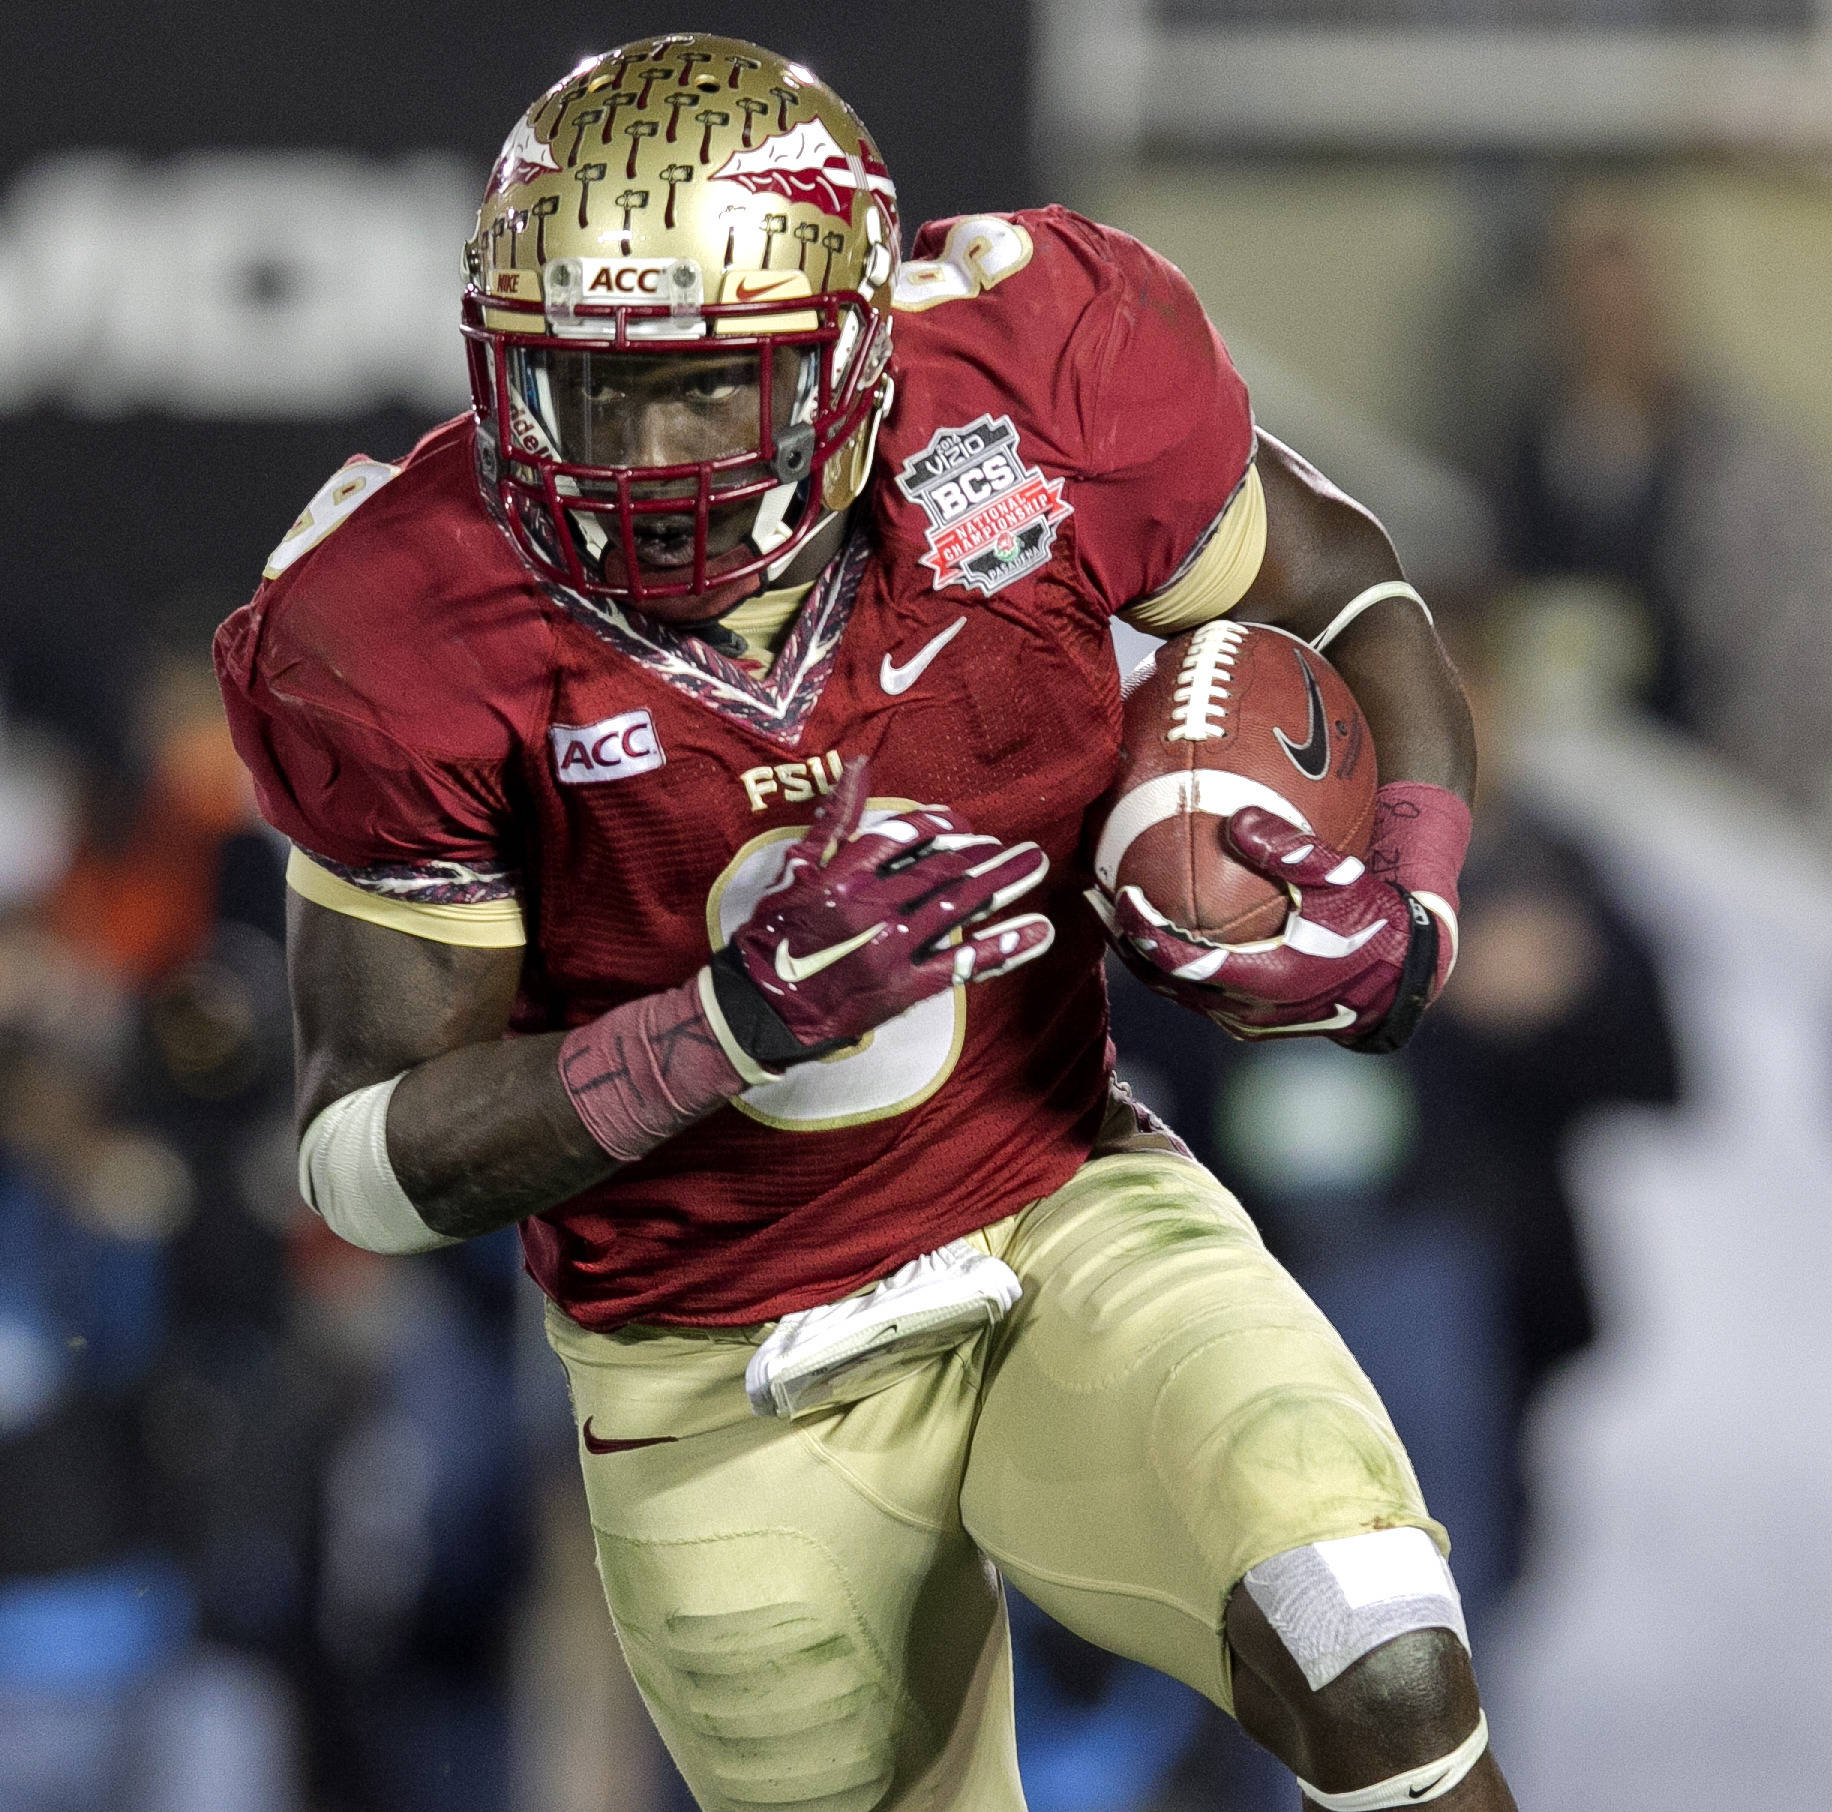 Karlos Williams (9) focused on his run, BCS Championship, FSU vs Auburn, Rose Bowl, Pasadena, CA,  1-06-14,  (Photo by Steve Musco)